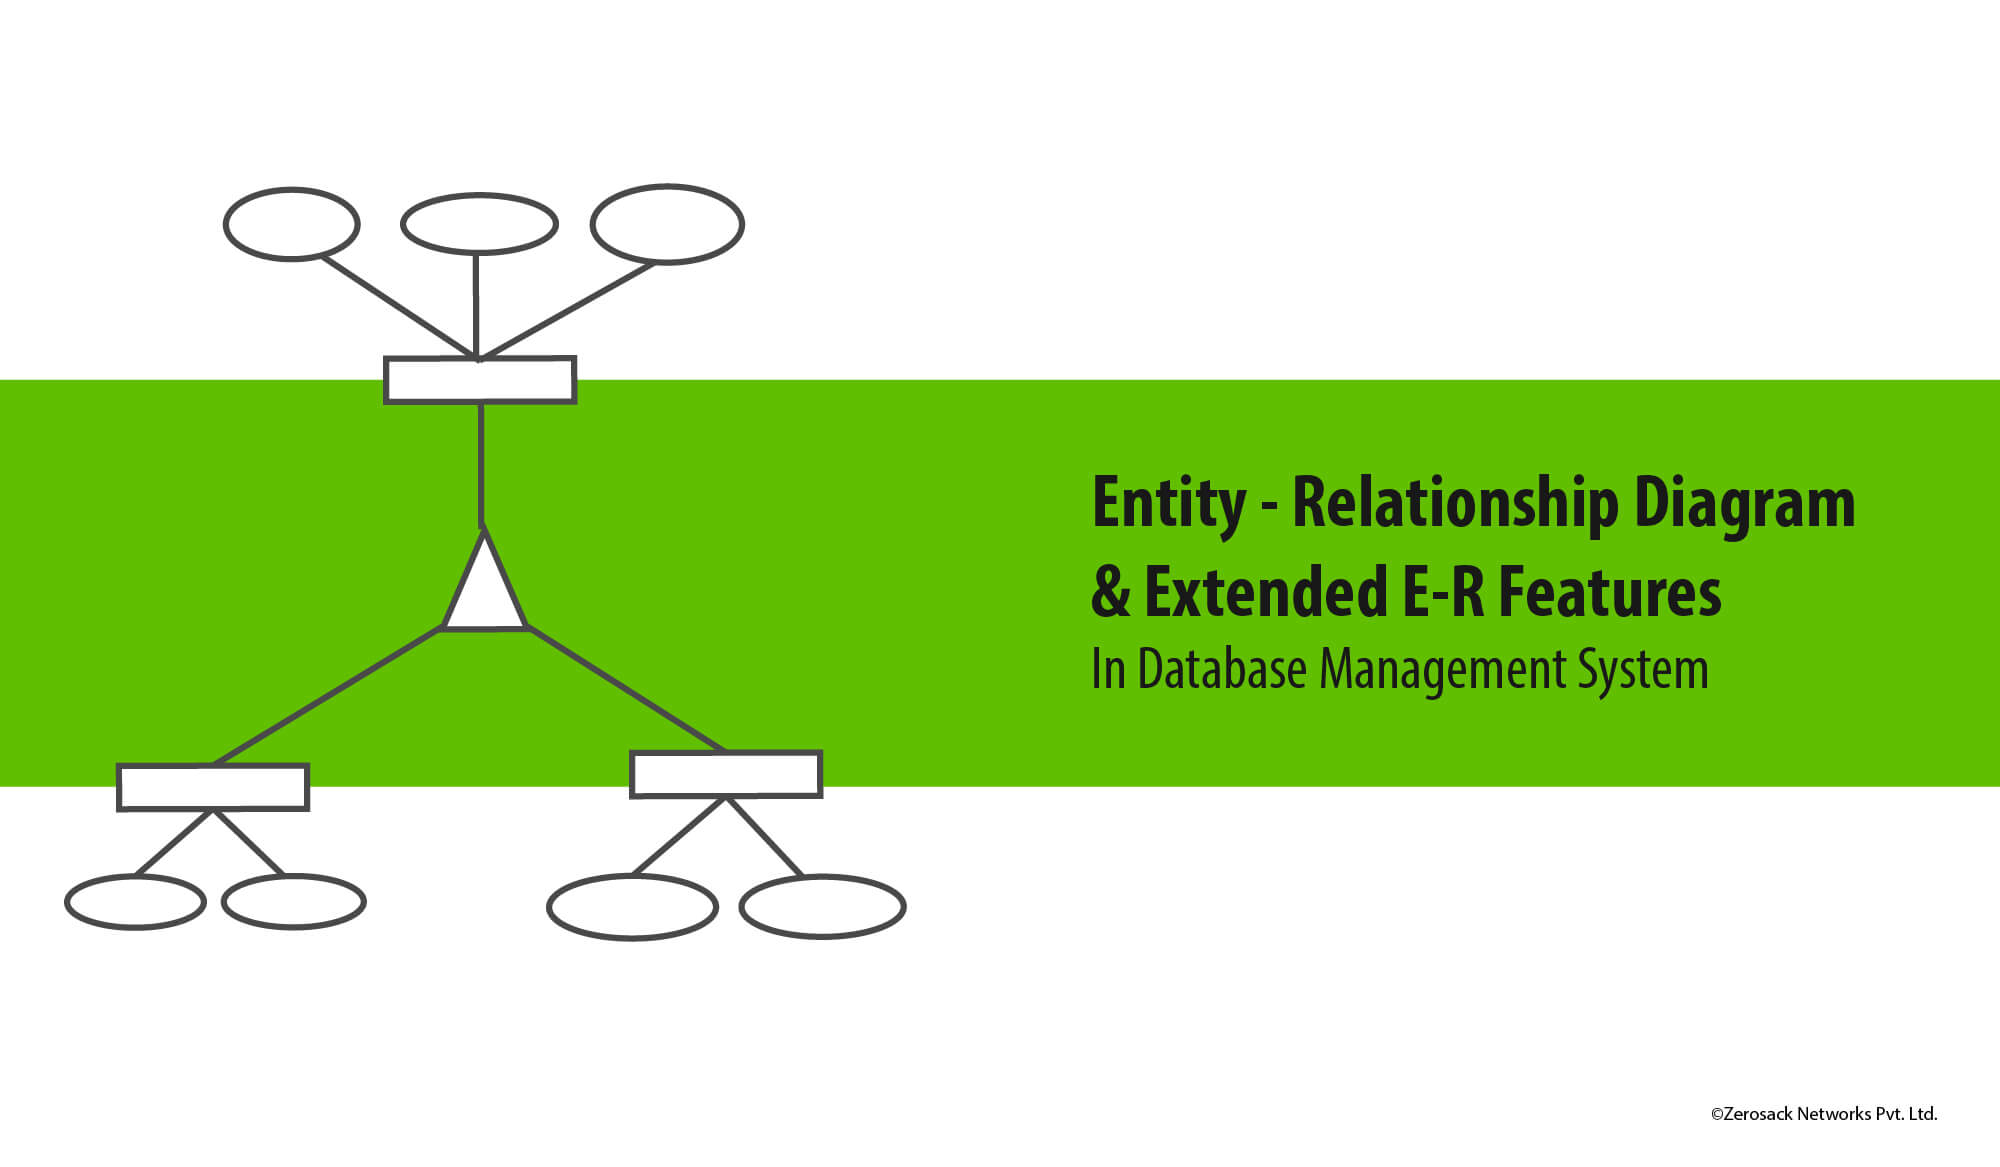 E-R Model Diagram And Extended E-R Feature In Dbms within Entity Relationship In Dbms